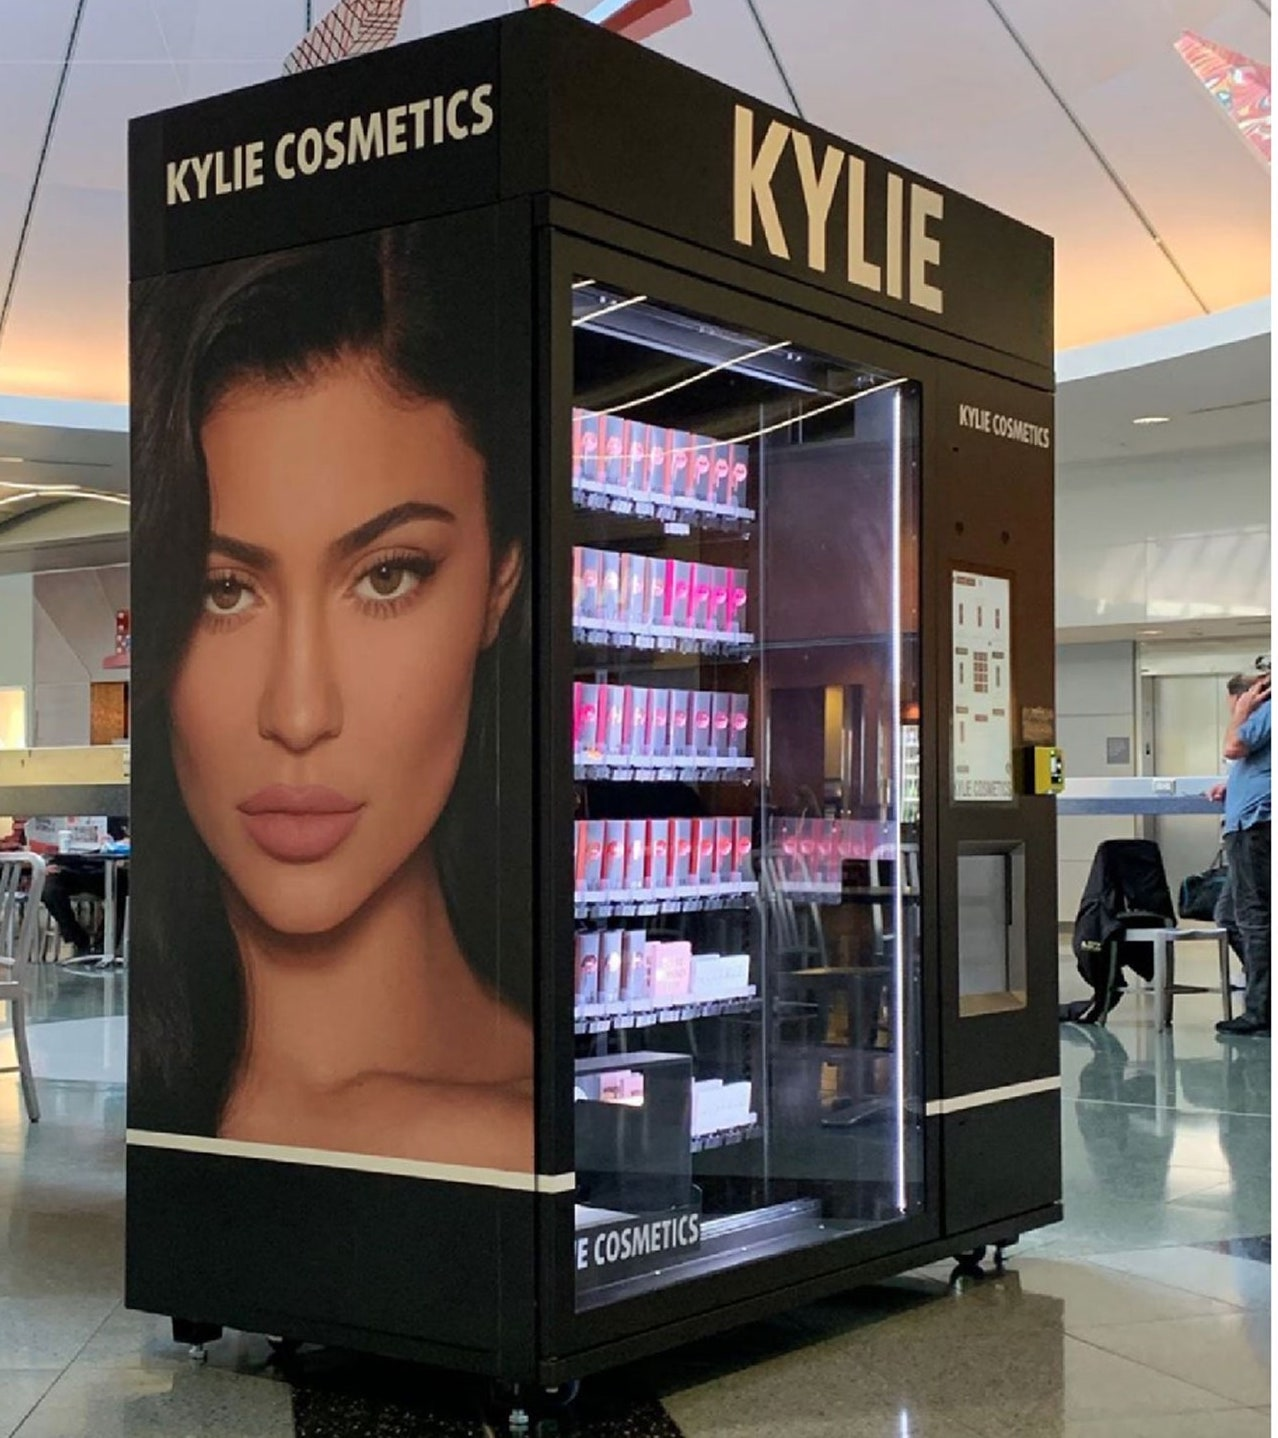 Kylie Cosmetics vending machine in Las Vegas airport. An ecommerce channel that Elastic Path can help you launch fast.